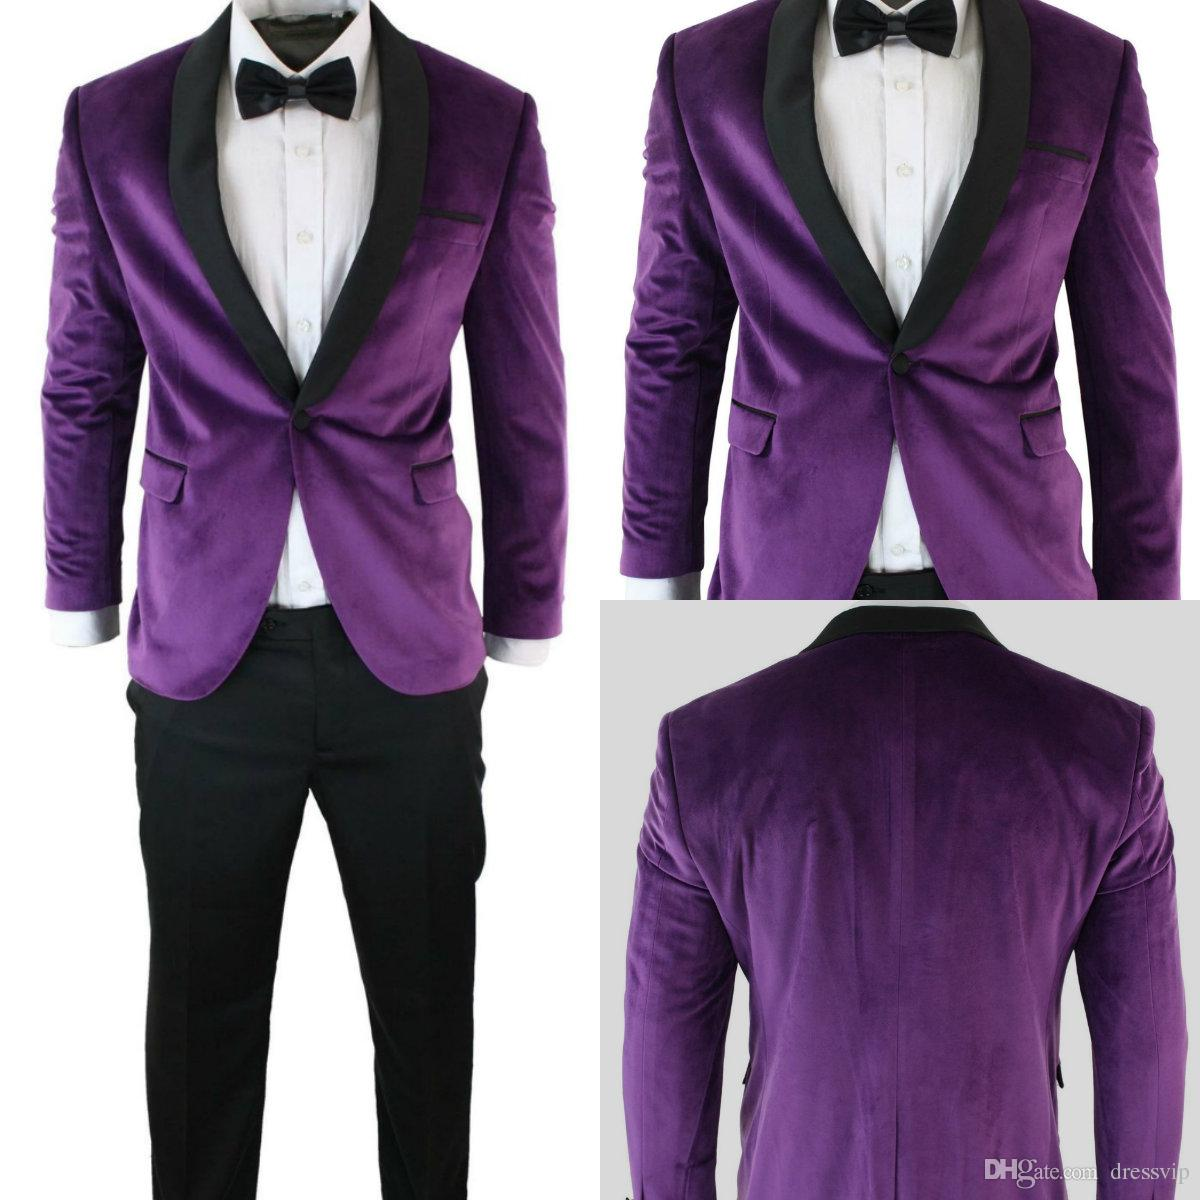 2e8cd9688a9 2018 Mens Suits Mens Velvet Tuxedo Dinner Suit Black Purple Slim Fit  Wedding Party Prom Shawl Purple Formal Prom Suit Custom Made Jacket Blue  Prom Tuxedos ...